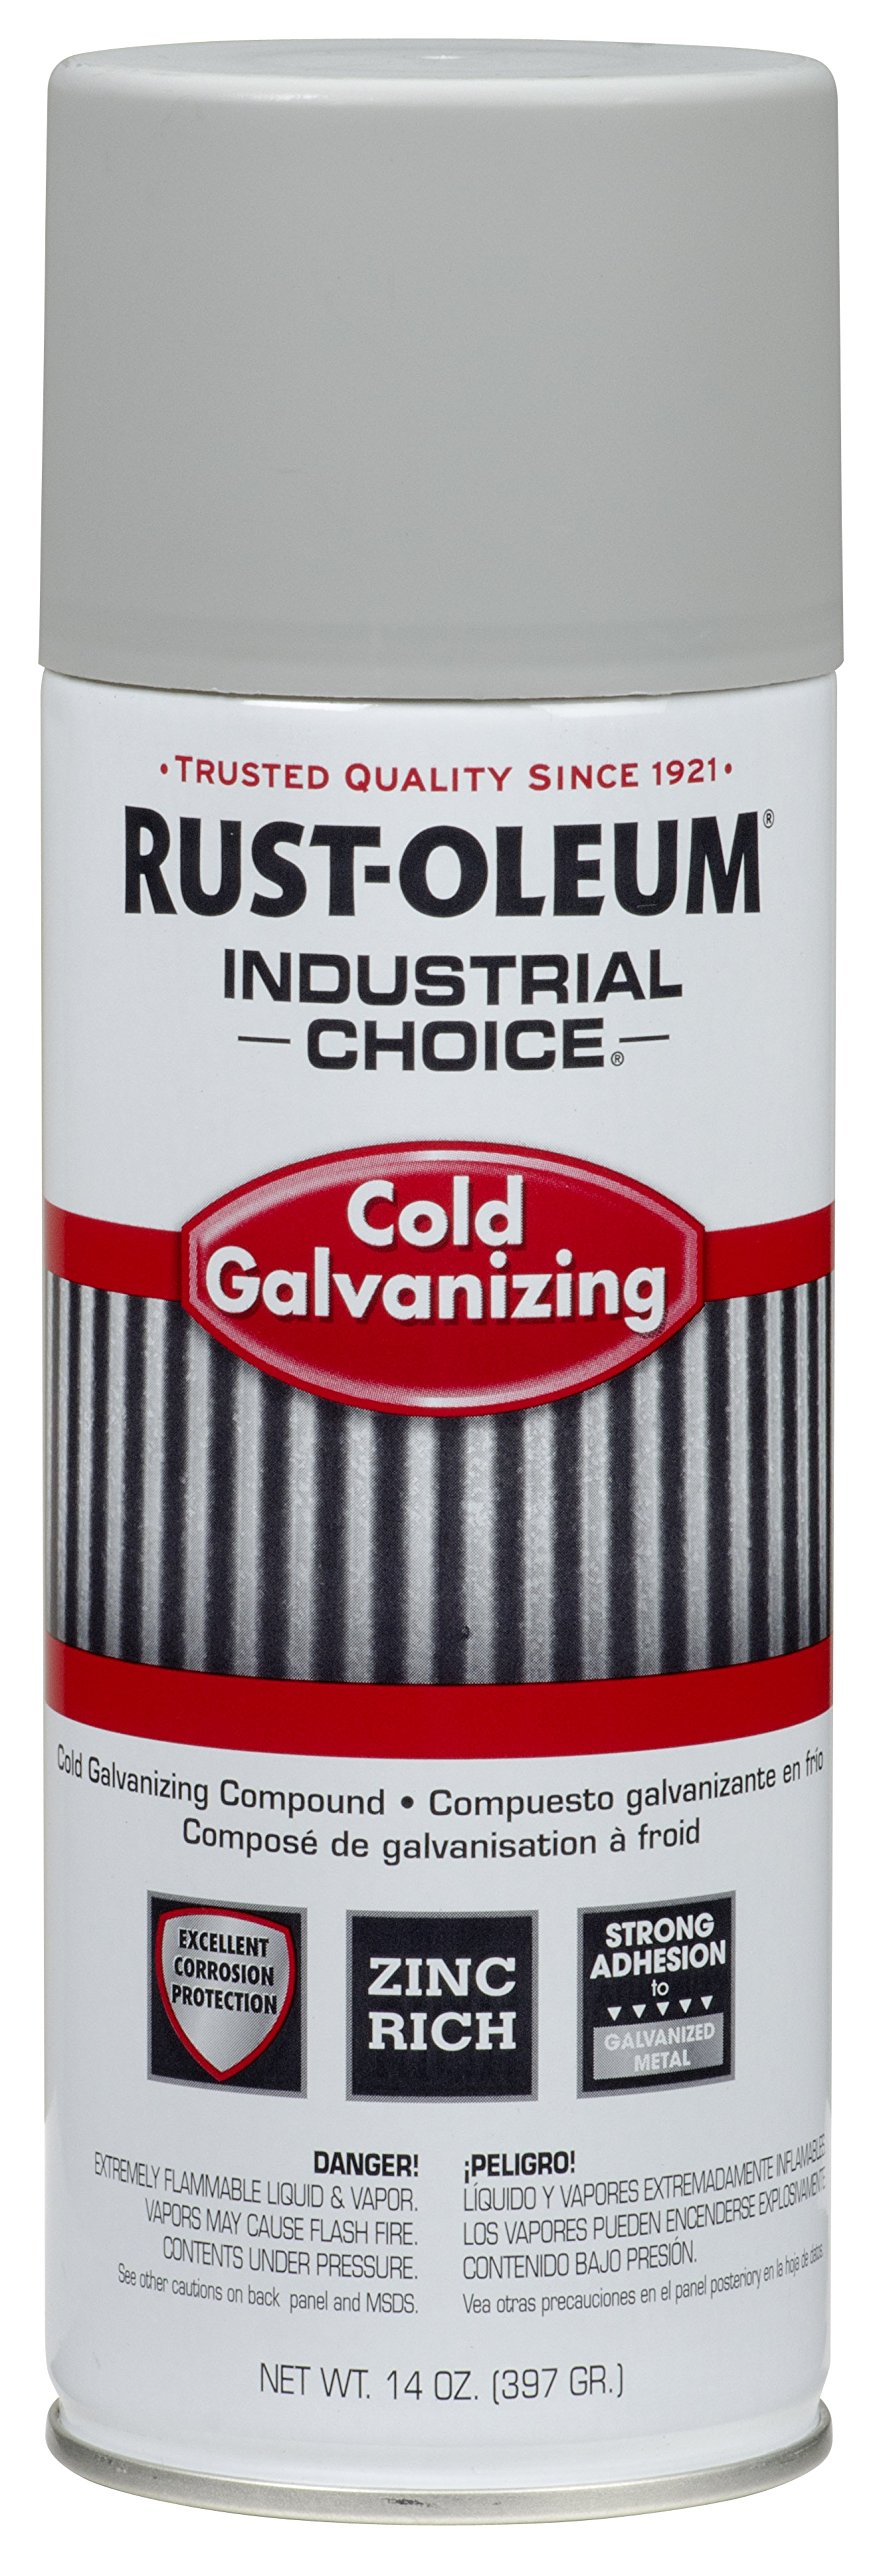 Rust-Oleum 1685830 Cold 1600 System Galvanizing Compound Aerosol, 14 fl oz Container Size, Can (Pack of 6)